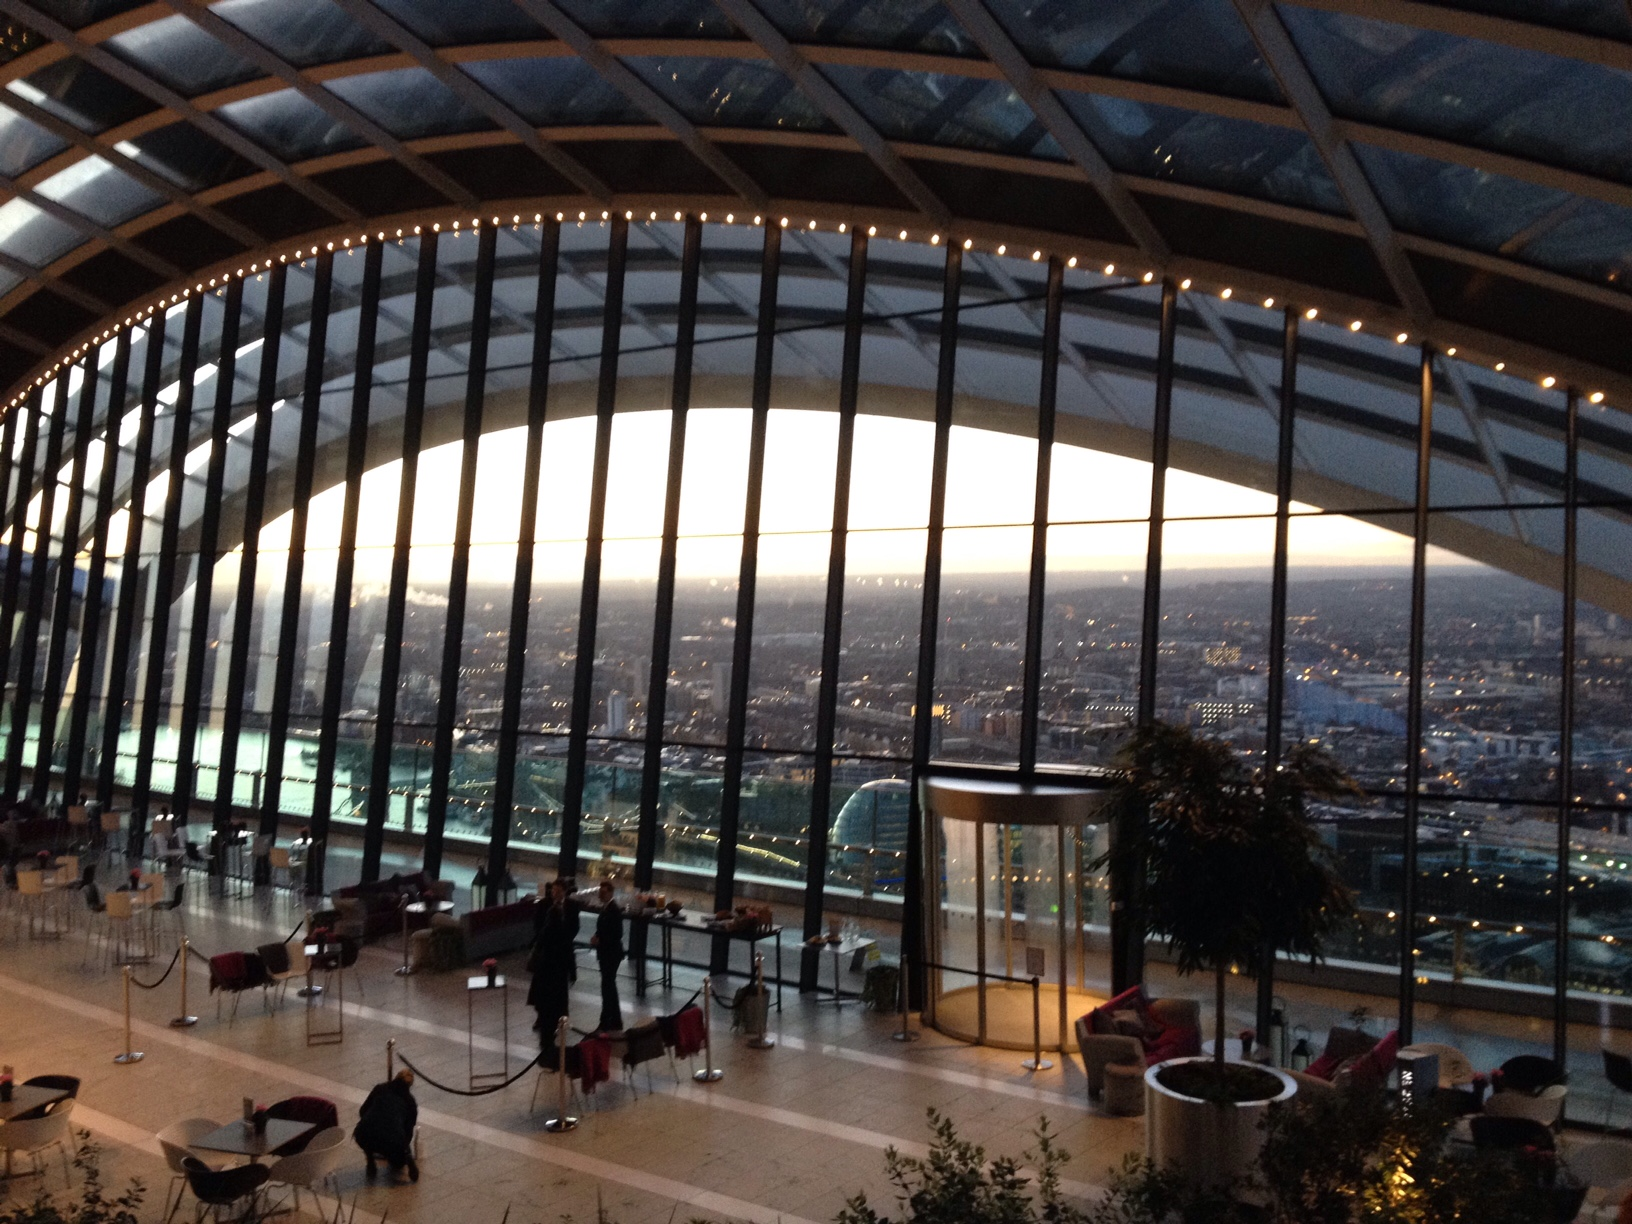 Stunning Review Sky Garden Sky High Yoga  Project Hb With Likable The Teaching Itself To Be Honest This Is A Destination Yoga Class First  And Foremost And So Even If The Class Was Poor The View And The  Experience Would  With Nice Garden Garden Garden Also Hilton Garden Inn Orlando At Seaworld In Addition Garden Screen Designs And Garden Centre Clapham As Well As Busaba Eathai Covent Garden Additionally Shepperton Garden Centre From Projecthbcouk With   Likable Review Sky Garden Sky High Yoga  Project Hb With Nice The Teaching Itself To Be Honest This Is A Destination Yoga Class First  And Foremost And So Even If The Class Was Poor The View And The  Experience Would  And Stunning Garden Garden Garden Also Hilton Garden Inn Orlando At Seaworld In Addition Garden Screen Designs From Projecthbcouk